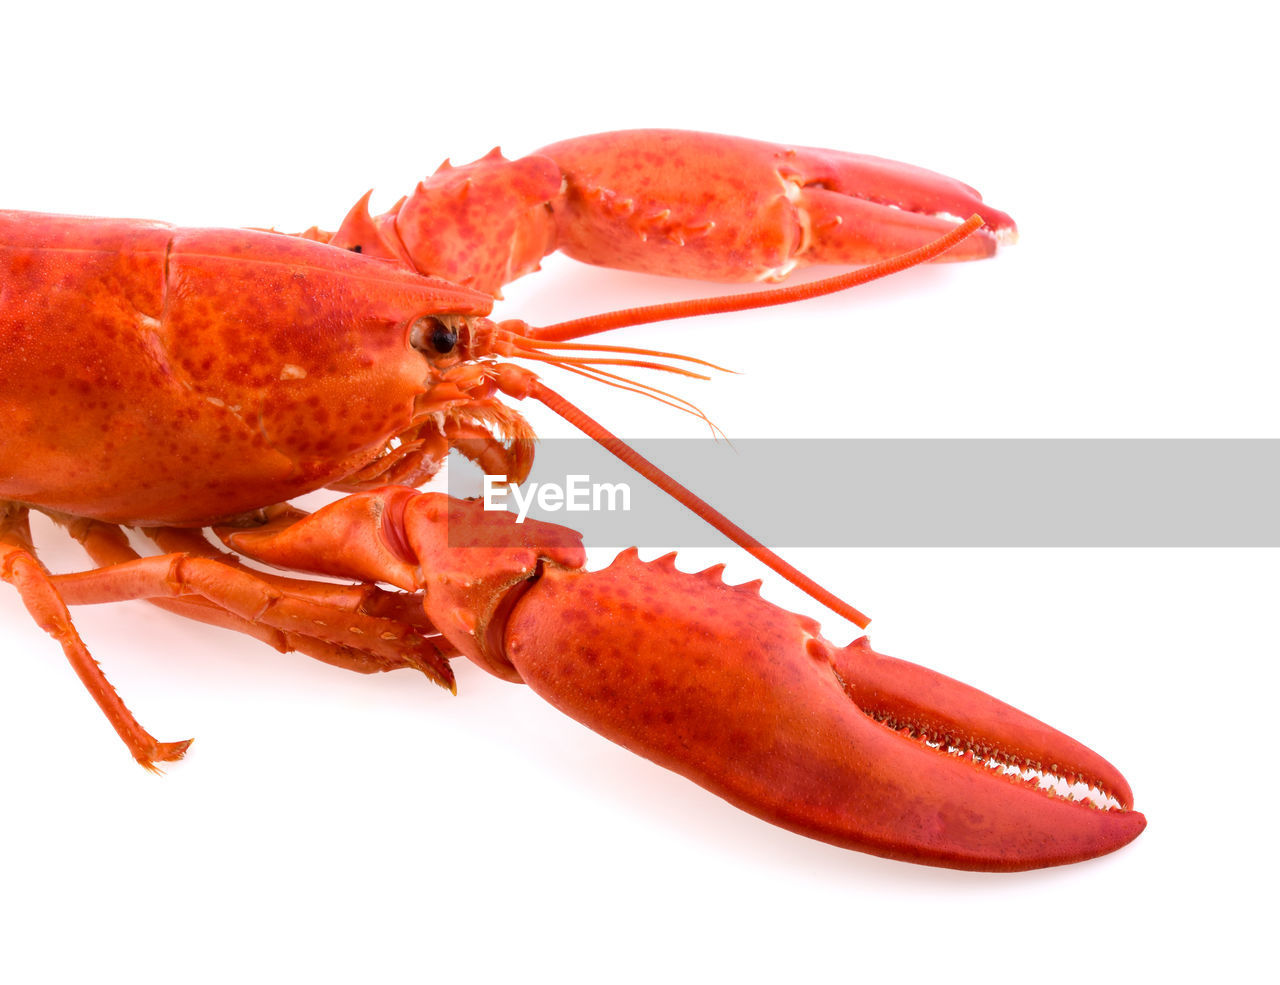 white background, studio shot, close-up, one animal, indoors, red, animal themes, no people, food and drink, cut out, food, animal wildlife, animal, freshness, animals in the wild, crustacean, seafood, healthy eating, insect, wellbeing, marine